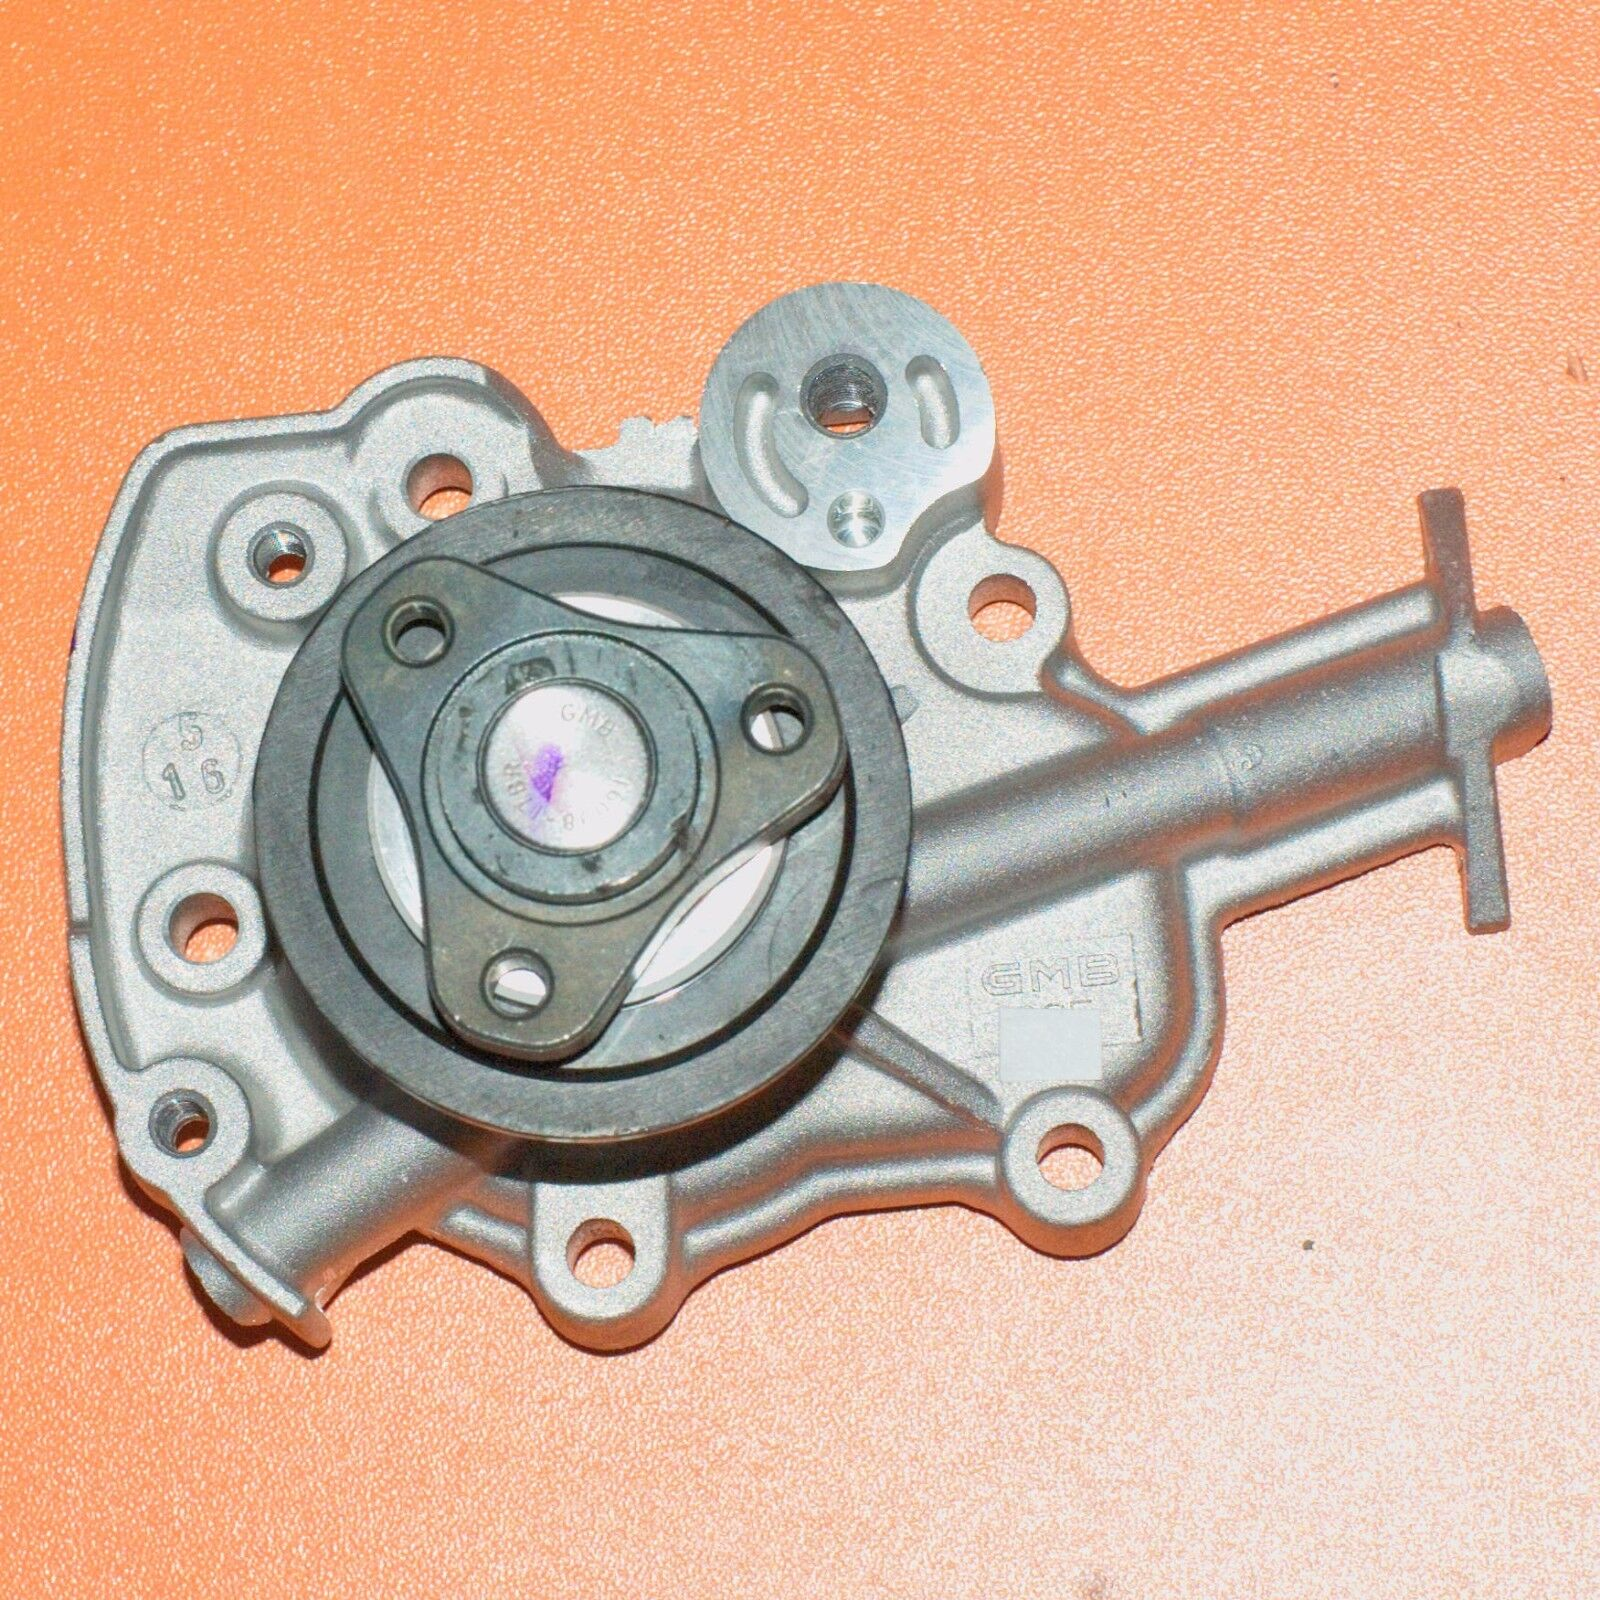 Heavy Duty GMB Water Pump Fits Suzuki Carry DA52T DA52V DA52W DB52T DB52V Late